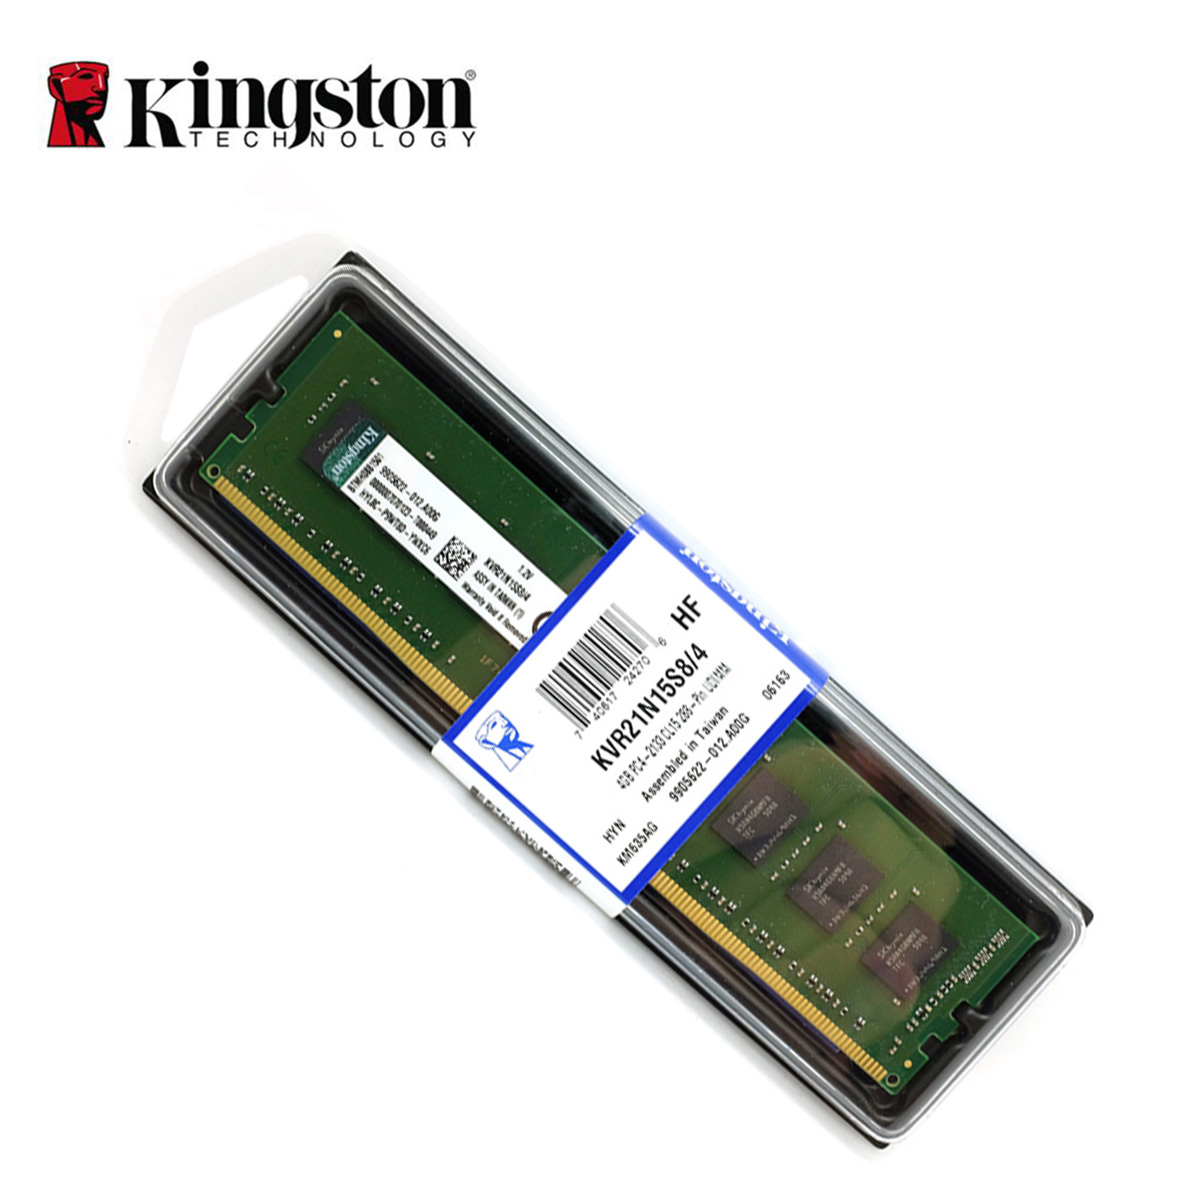 Mémoire Kingston 8Go DDR4 PC17000 2133 MHz CL15, informatique Reunion 974, Futur Réunion informatique